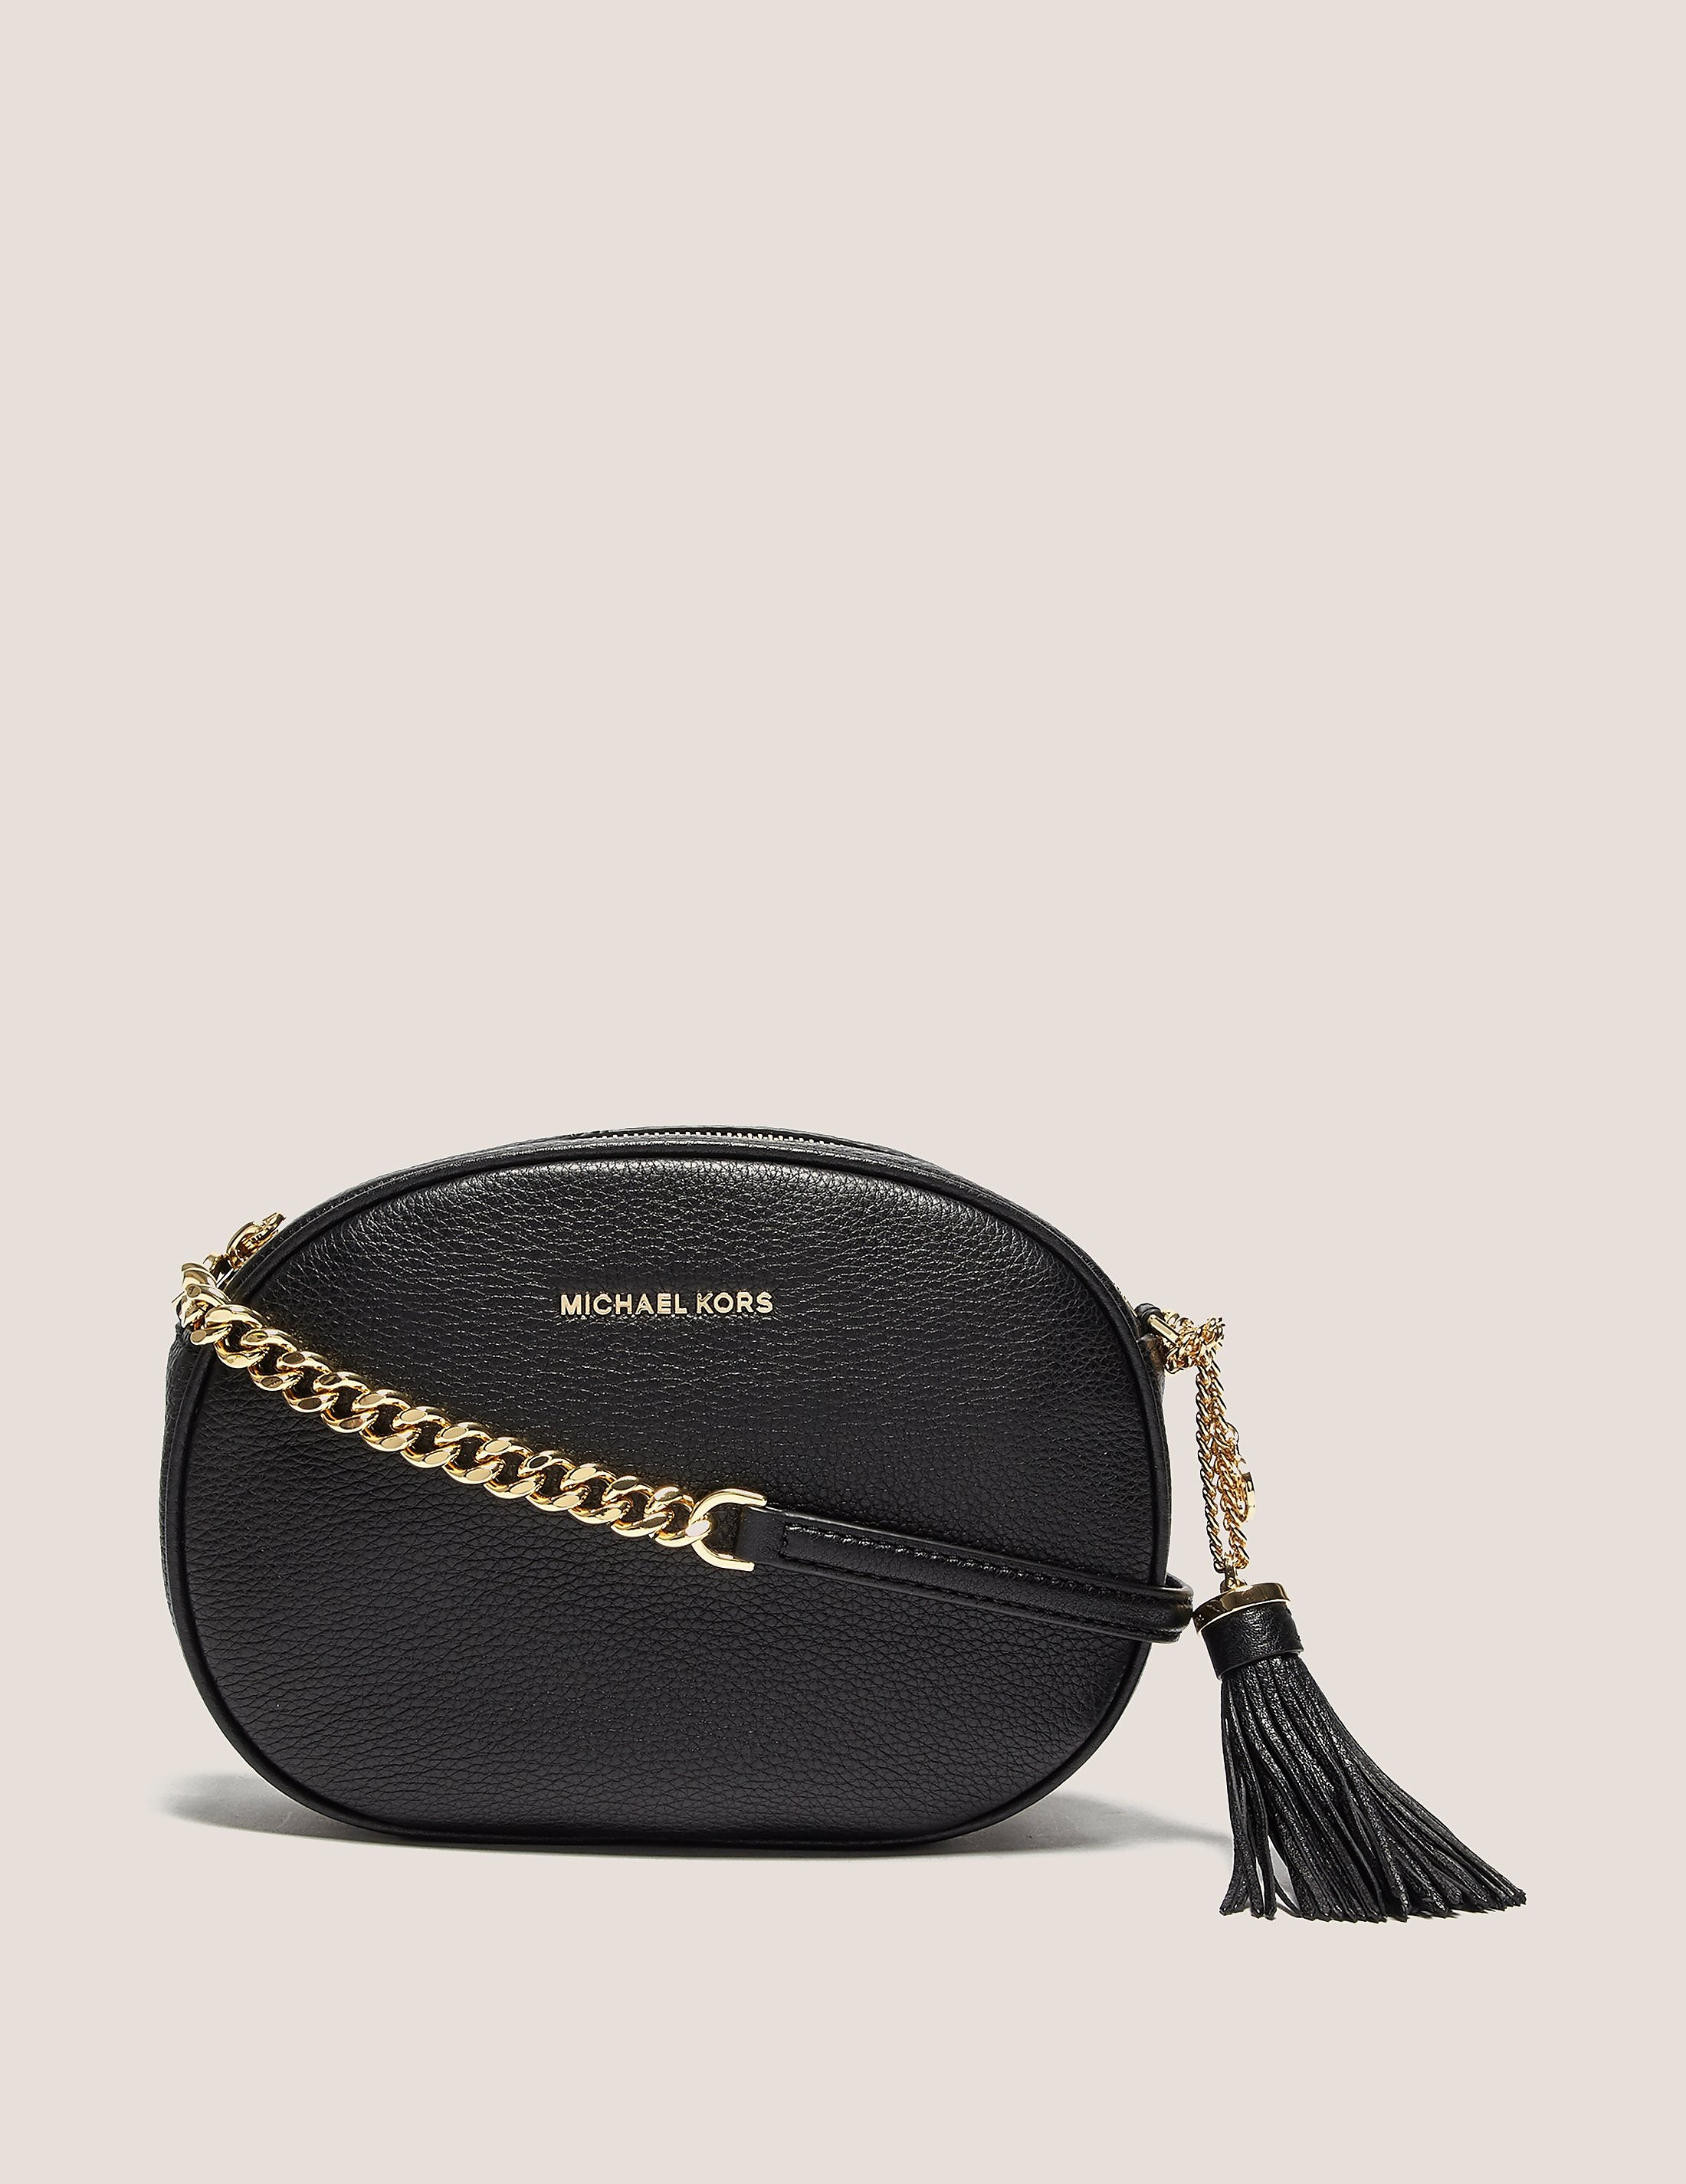 Michael Kors Ginny Medium Messenger Bag